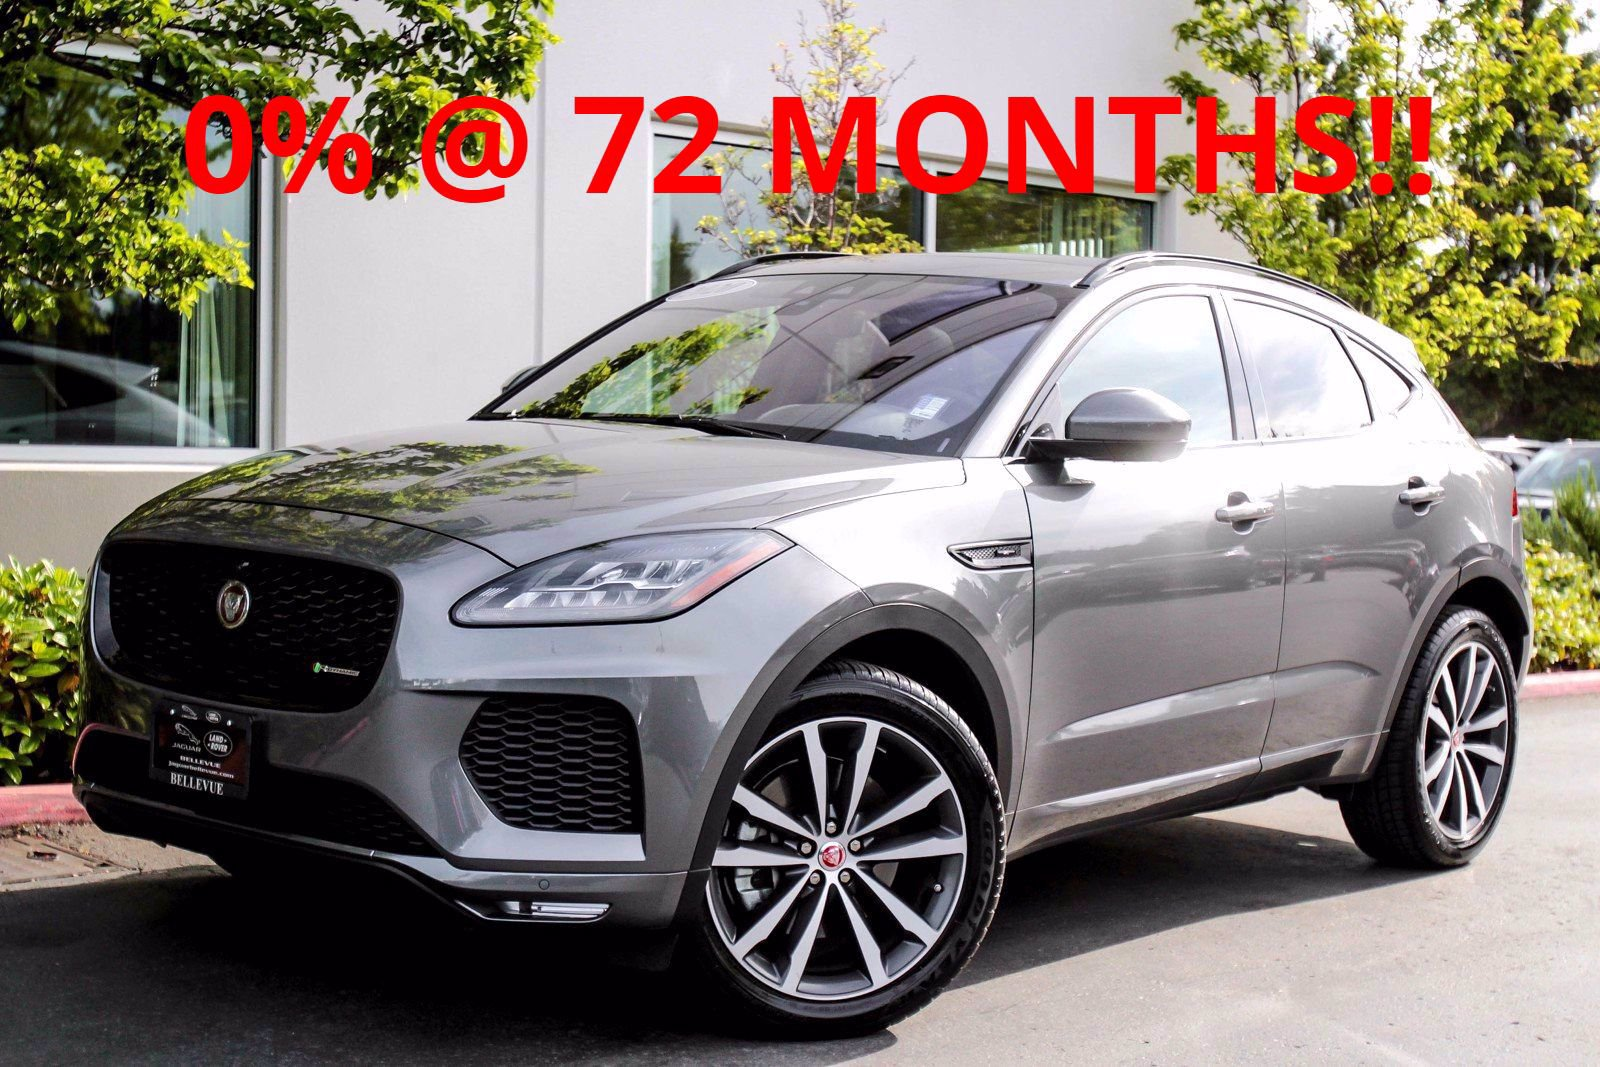 Pre-Owned 2020 Jaguar E-PACE Checkered Flag Edition